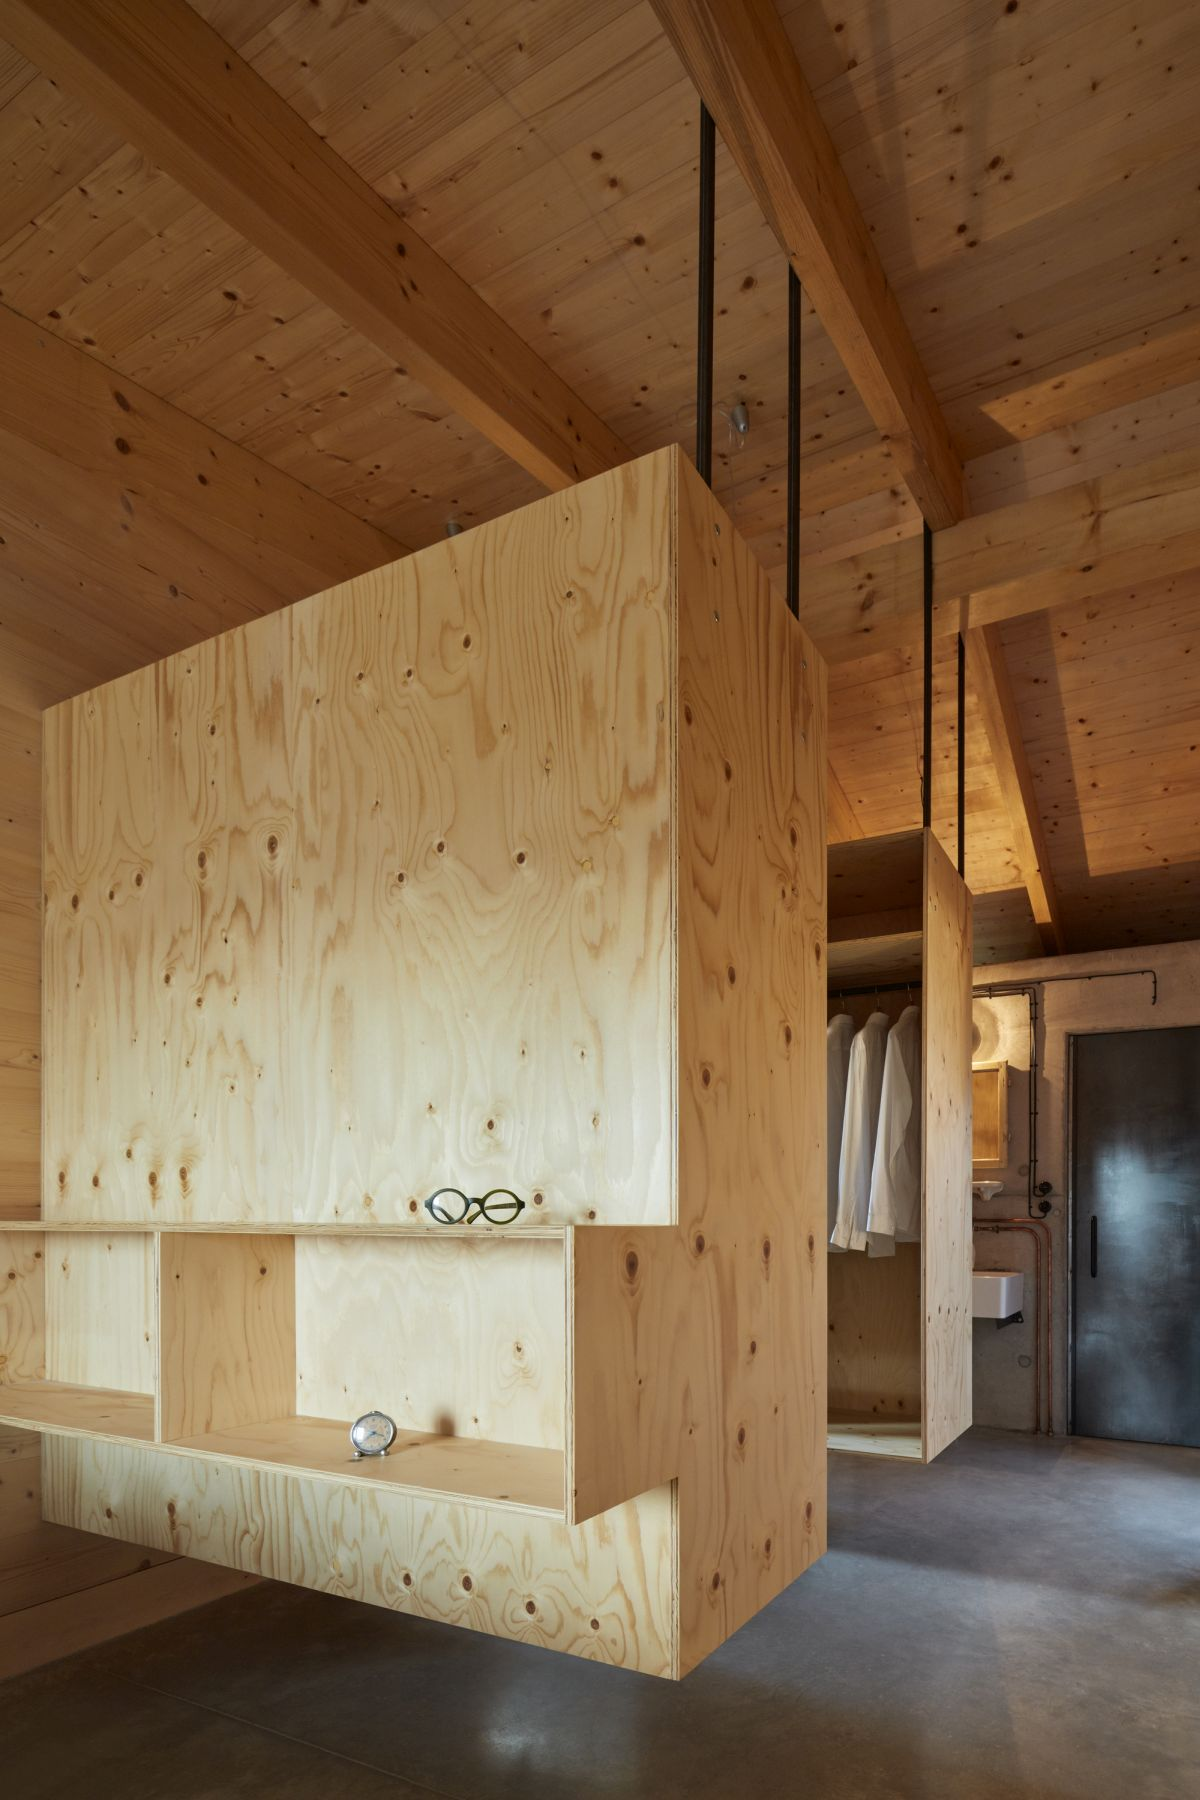 1559131838 715 a beautiful house hidden behind a large concrete wall - A Beautiful House Hidden Behind A Large Concrete Wall